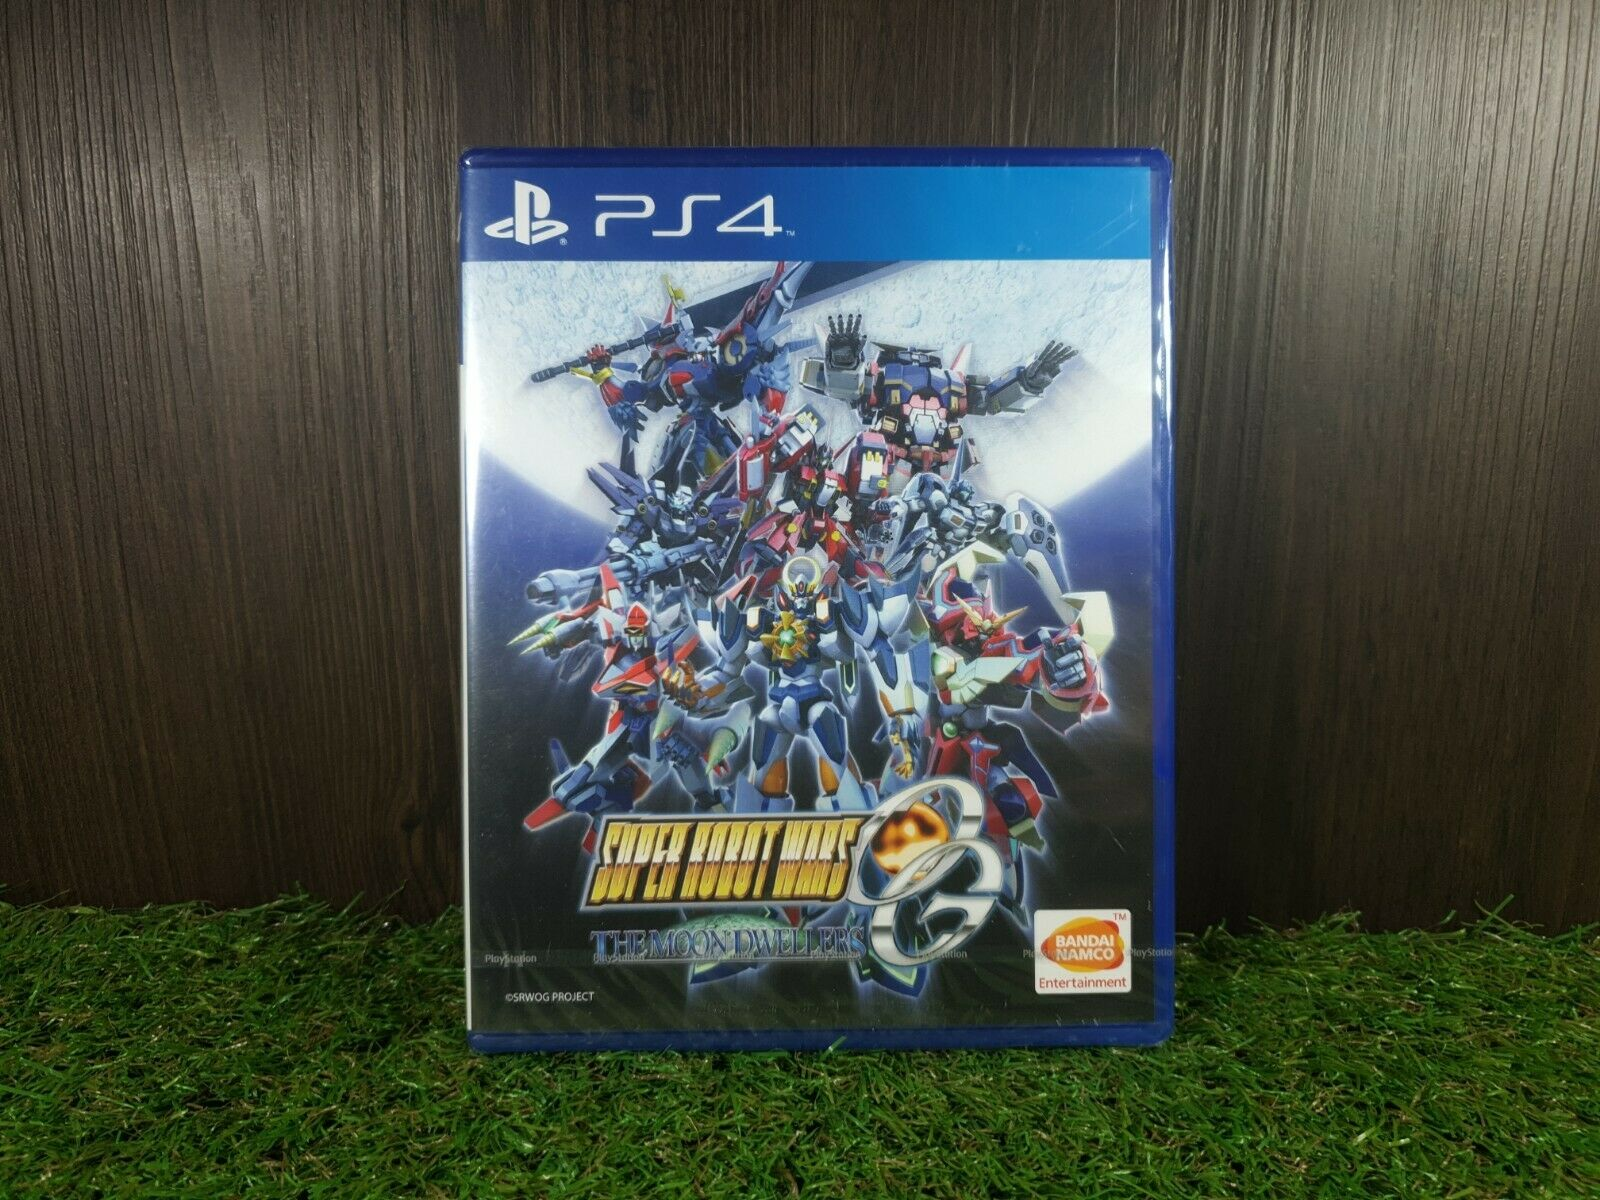 (ASIA ENGLISH VERSION) PS4 Super Robot Wars OG The Moon Dwellers (Brand New)